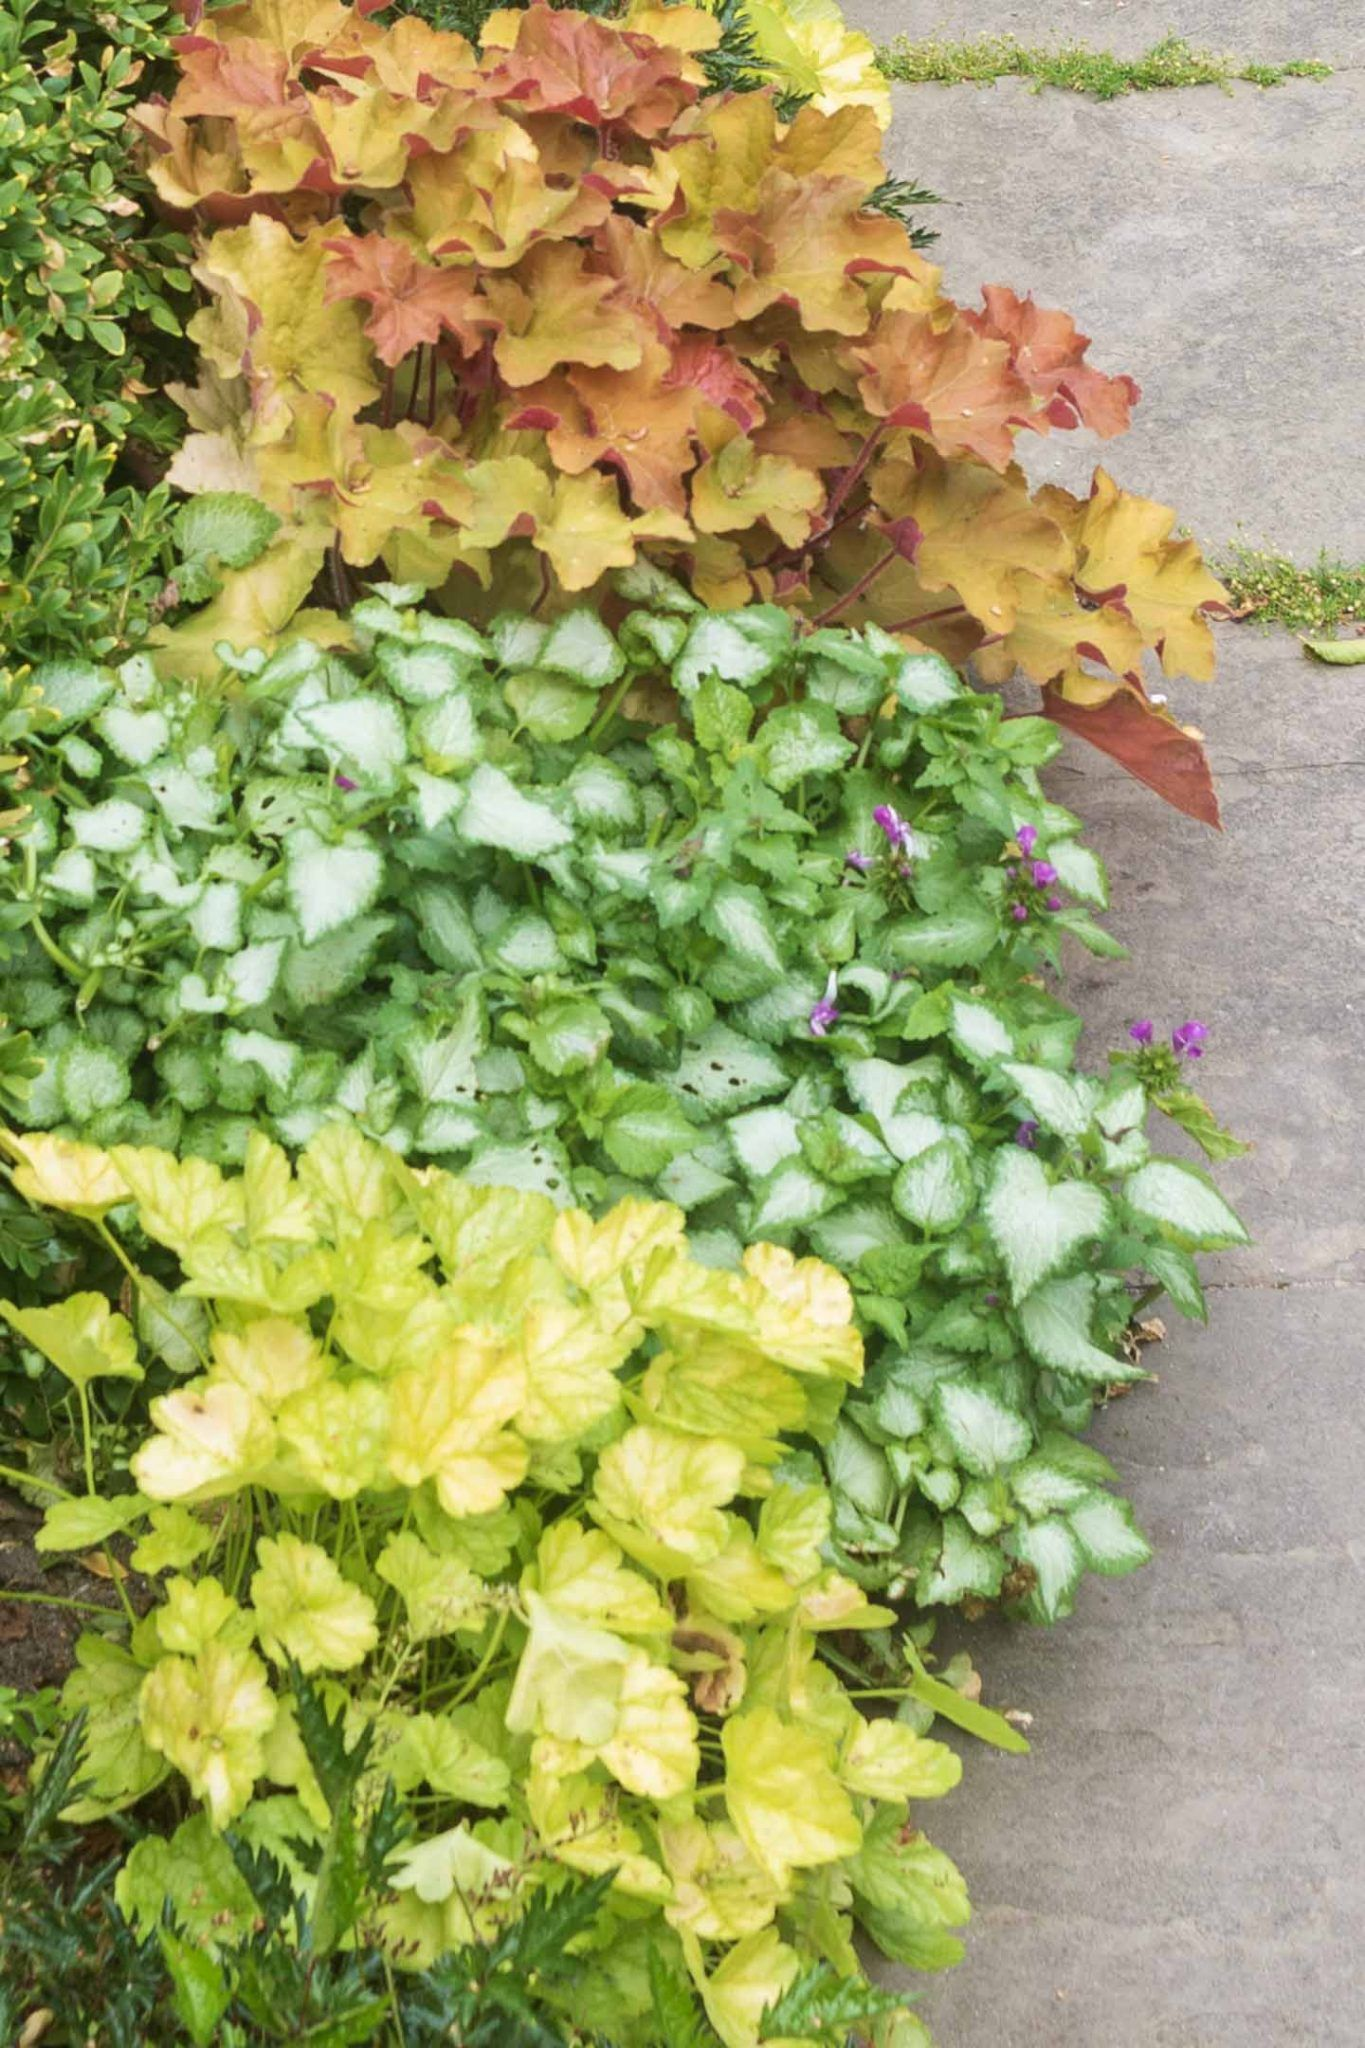 Perennial Ground Cover Full Sun: Perennial Ground Cover (21 Low-Growing Plants That Thrive